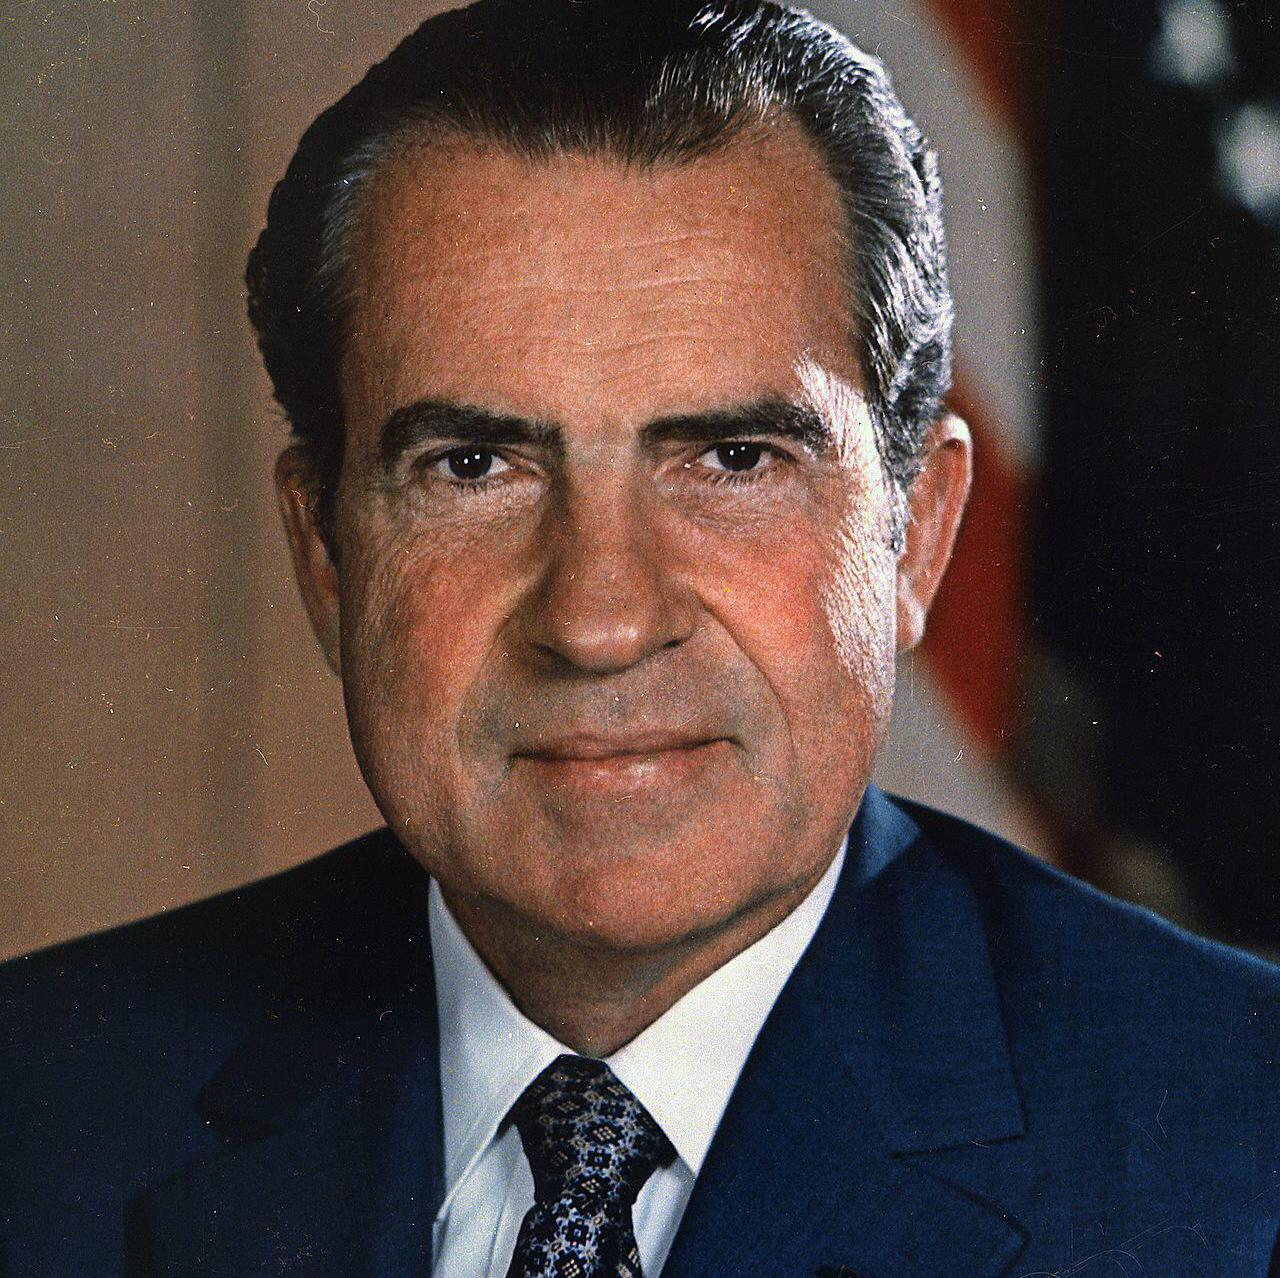 RIchardNixon37 photo